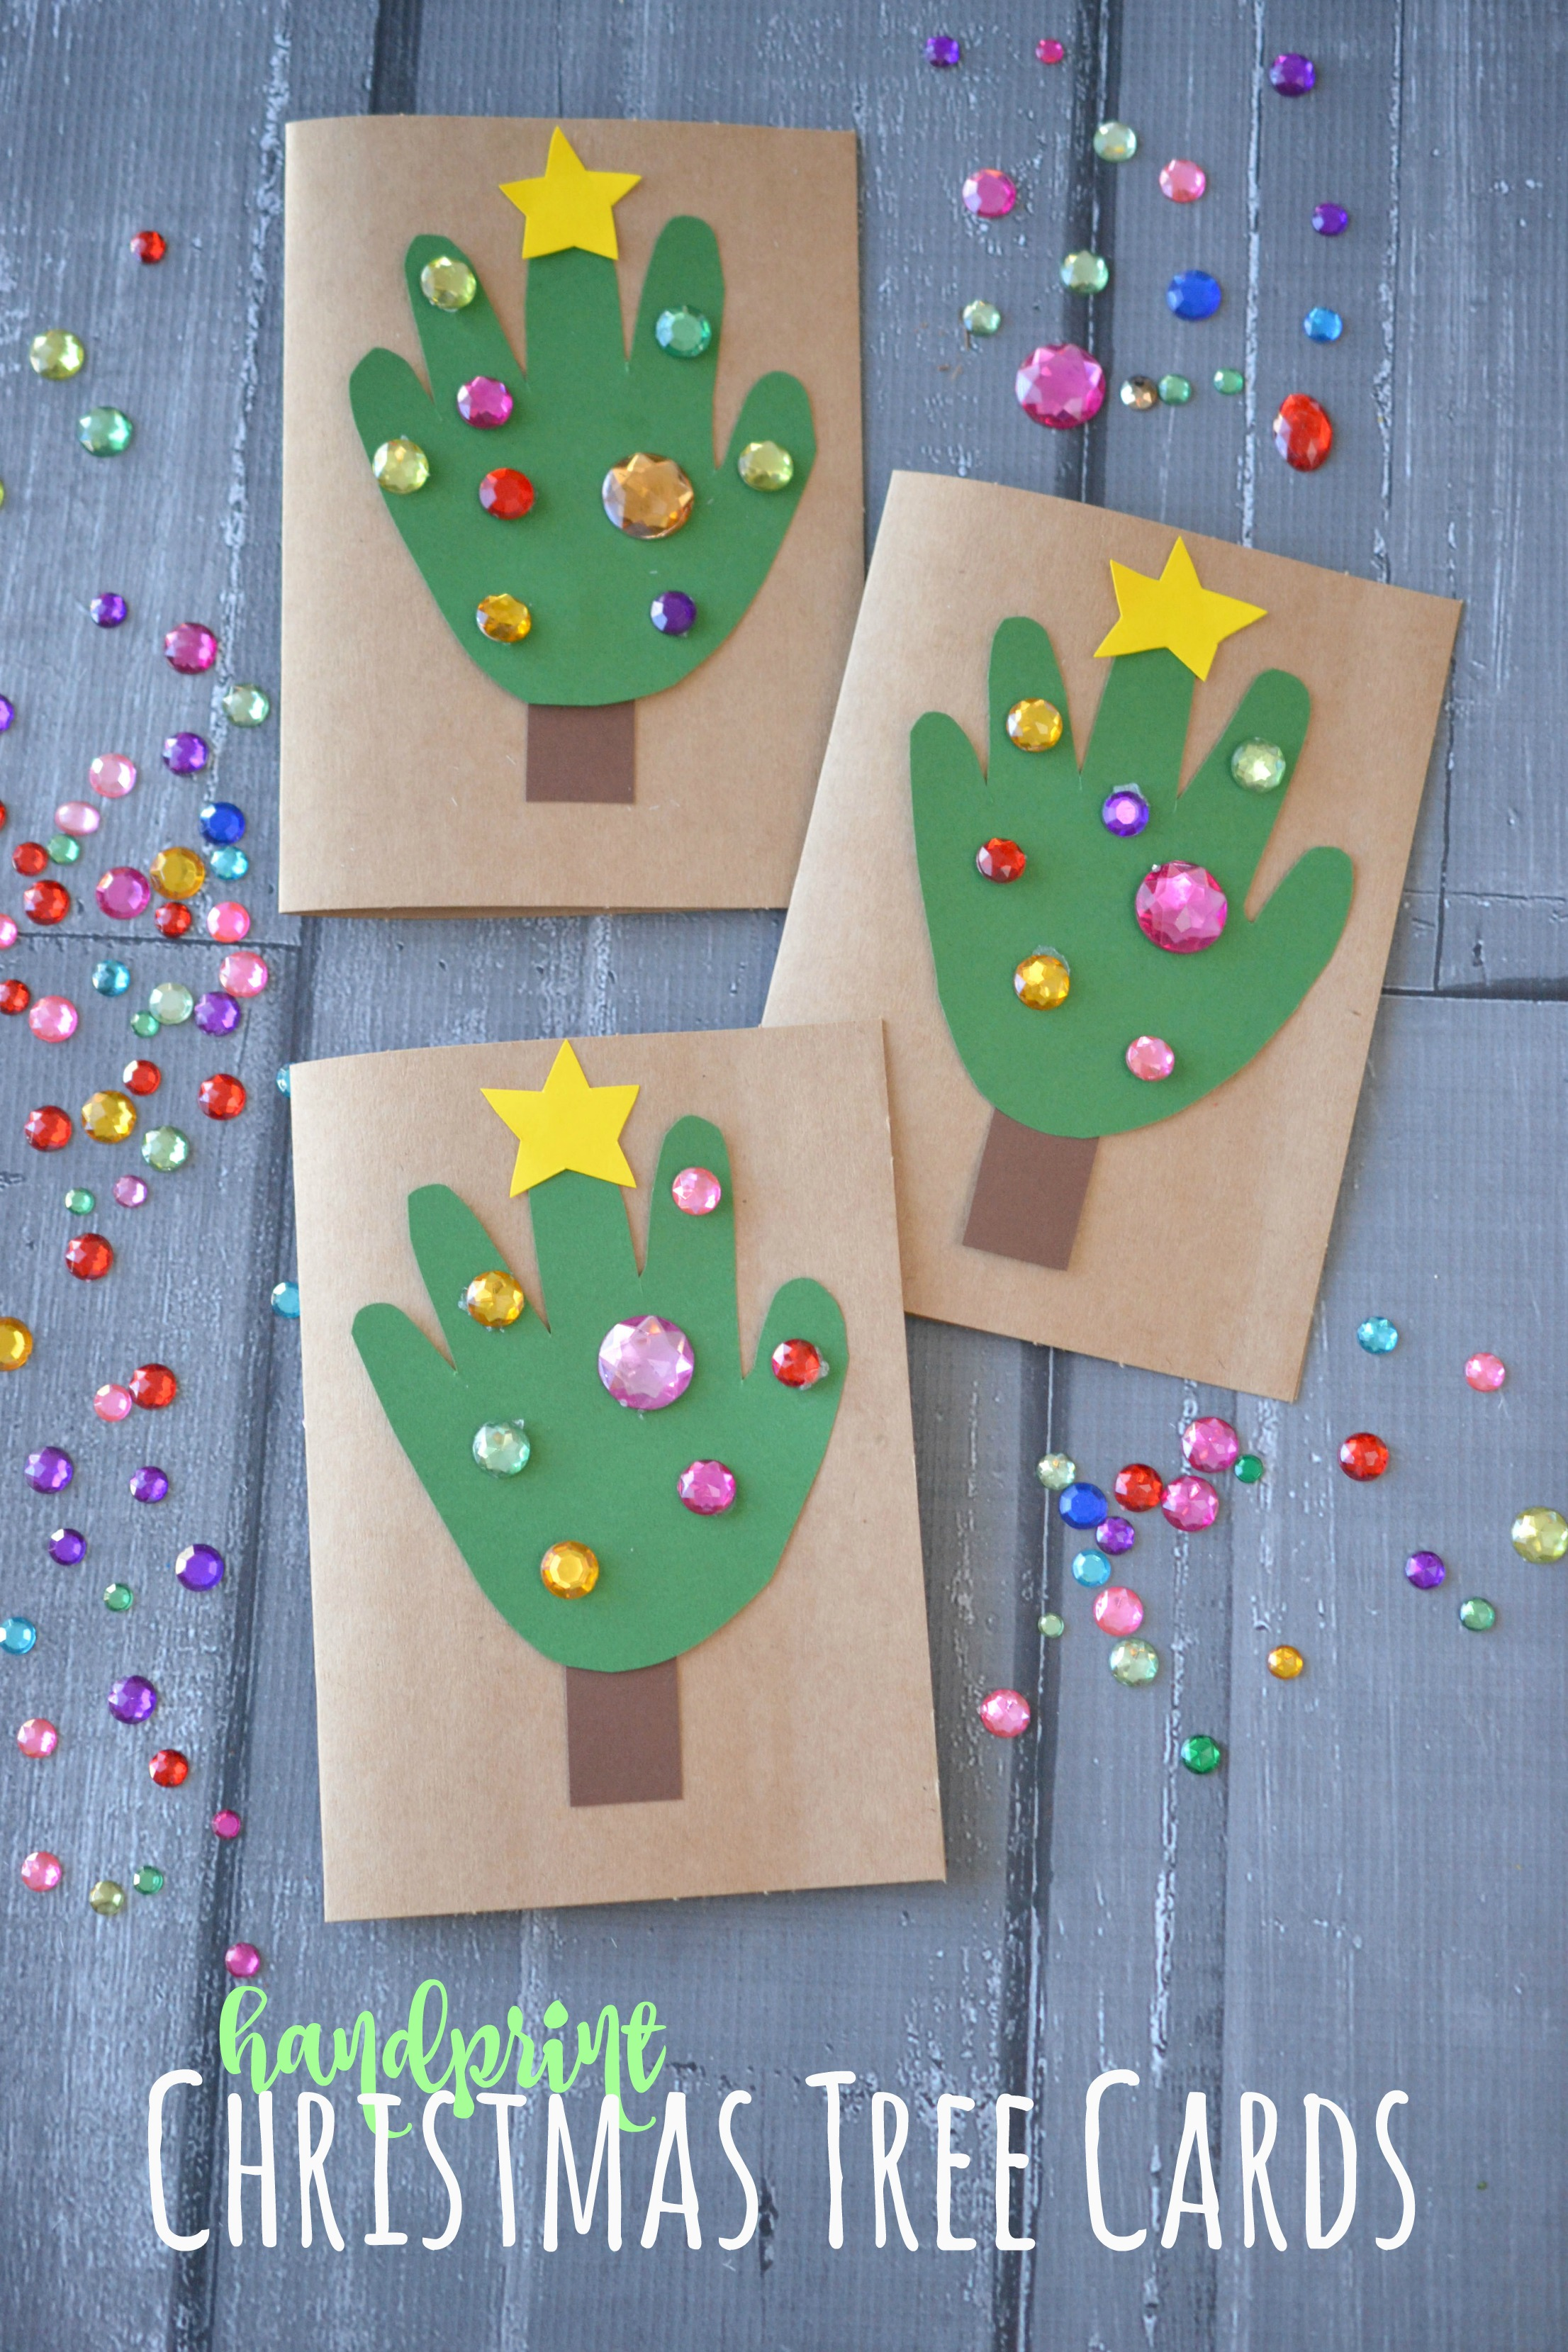 Christmas Cards Arts And Crafts Ideas Part - 21: Fun Christmas Crafts To Do With Kids.